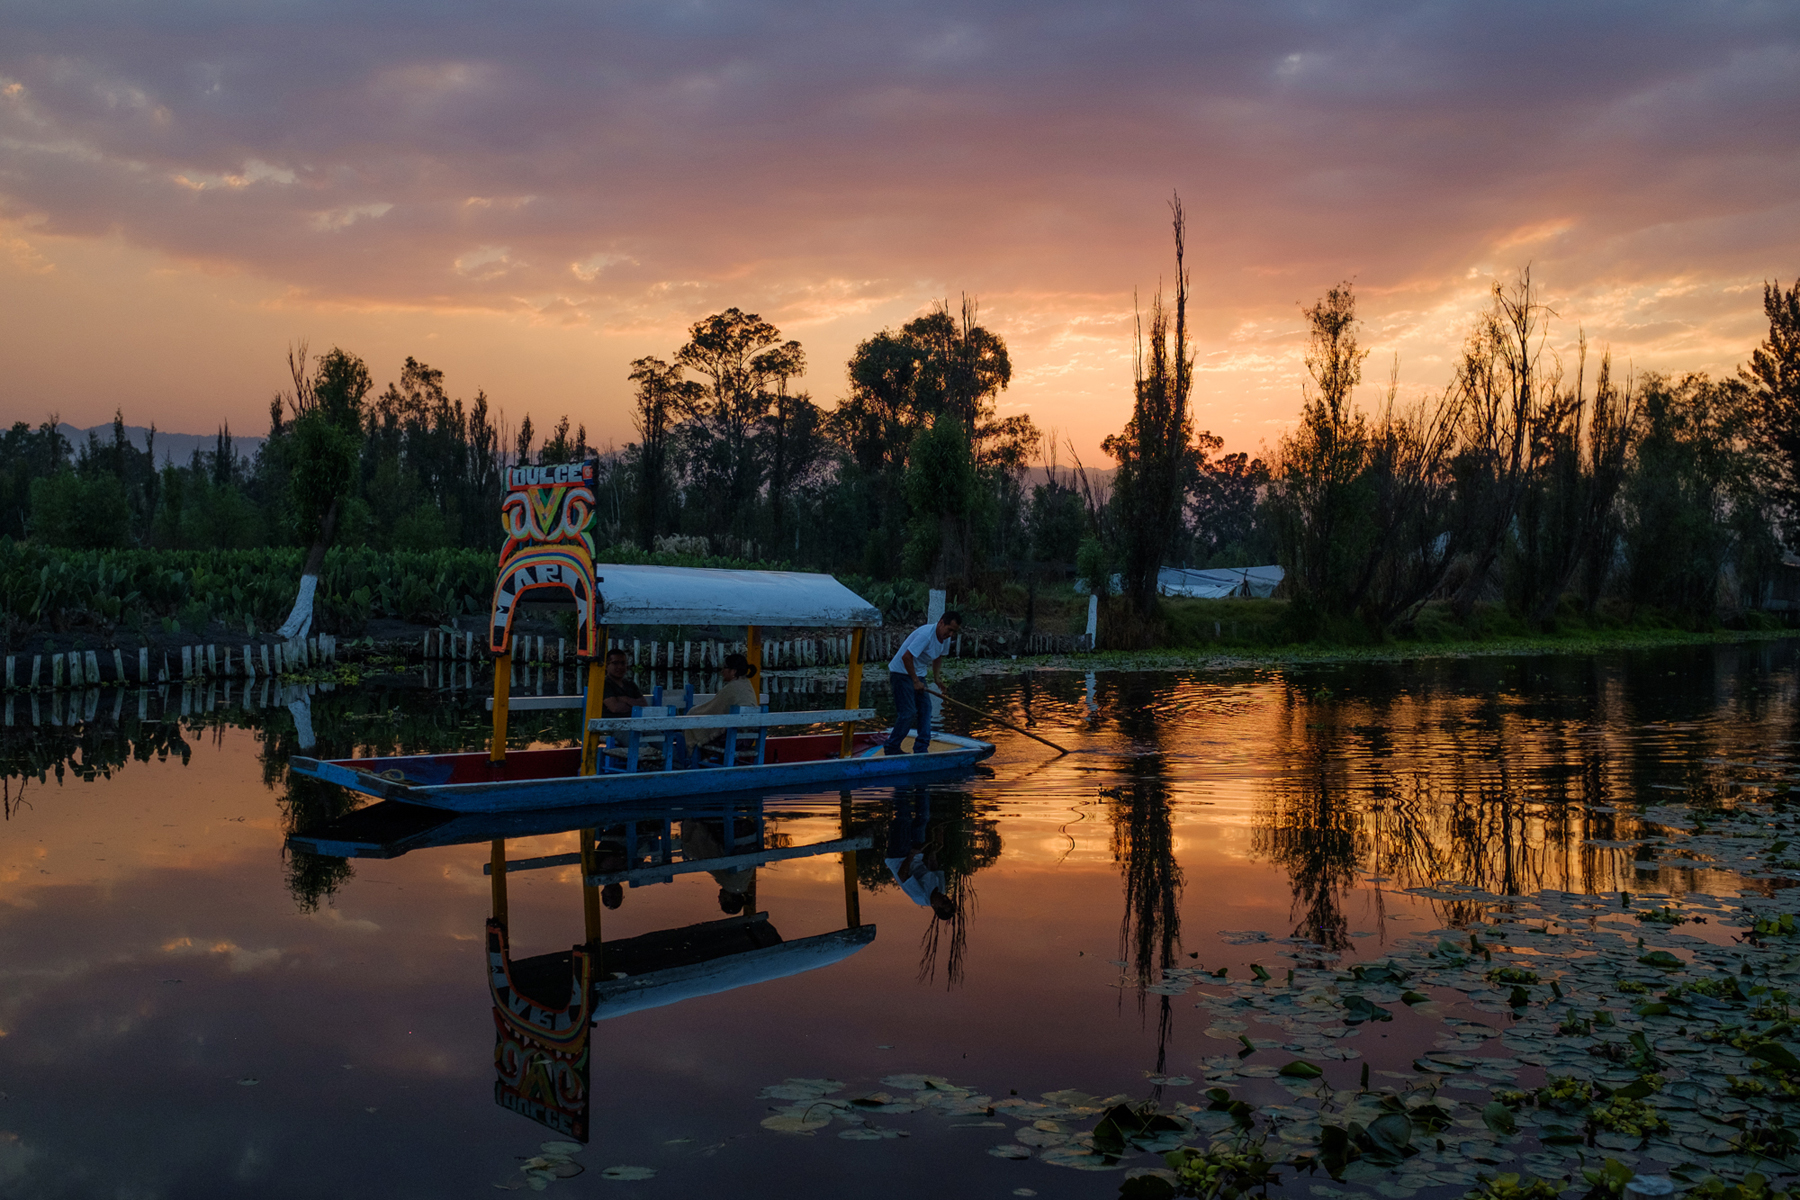 March 3, 2018 - Mexico City, Mexico: A trajinera floats by at sunset in Xochimilco. (GOOD Magazine/Mallika Vora)